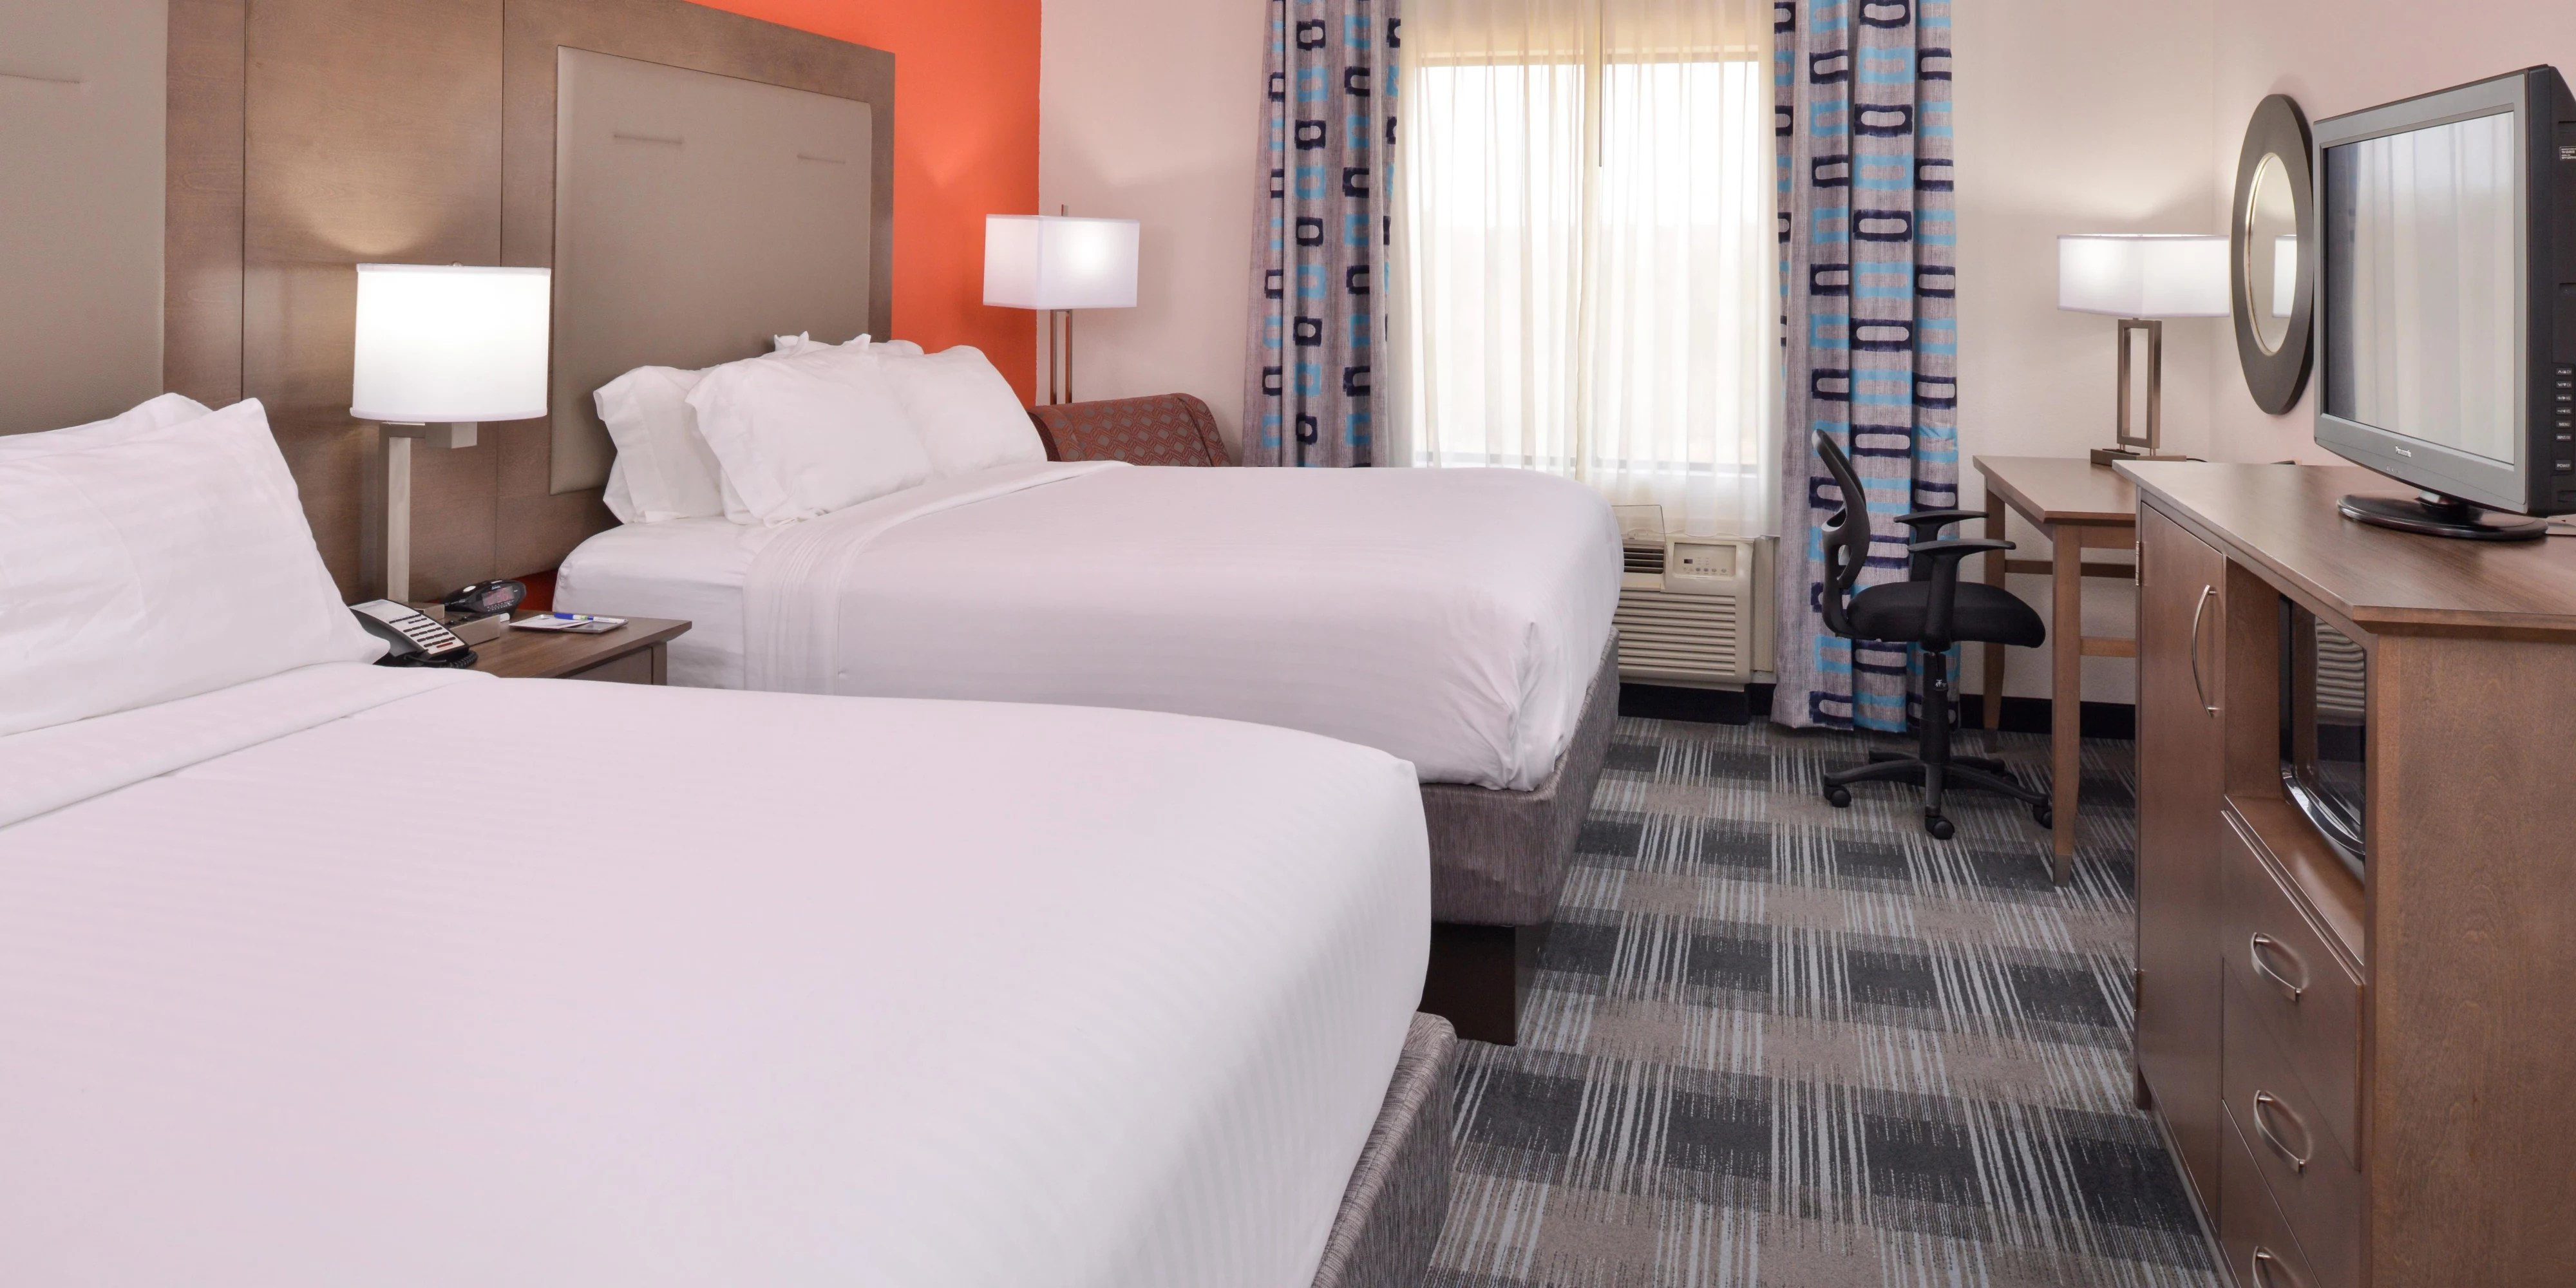 Holiday Inn Express Clanton Hotel by IHG holiday inn express clanton 5142676786 2x1